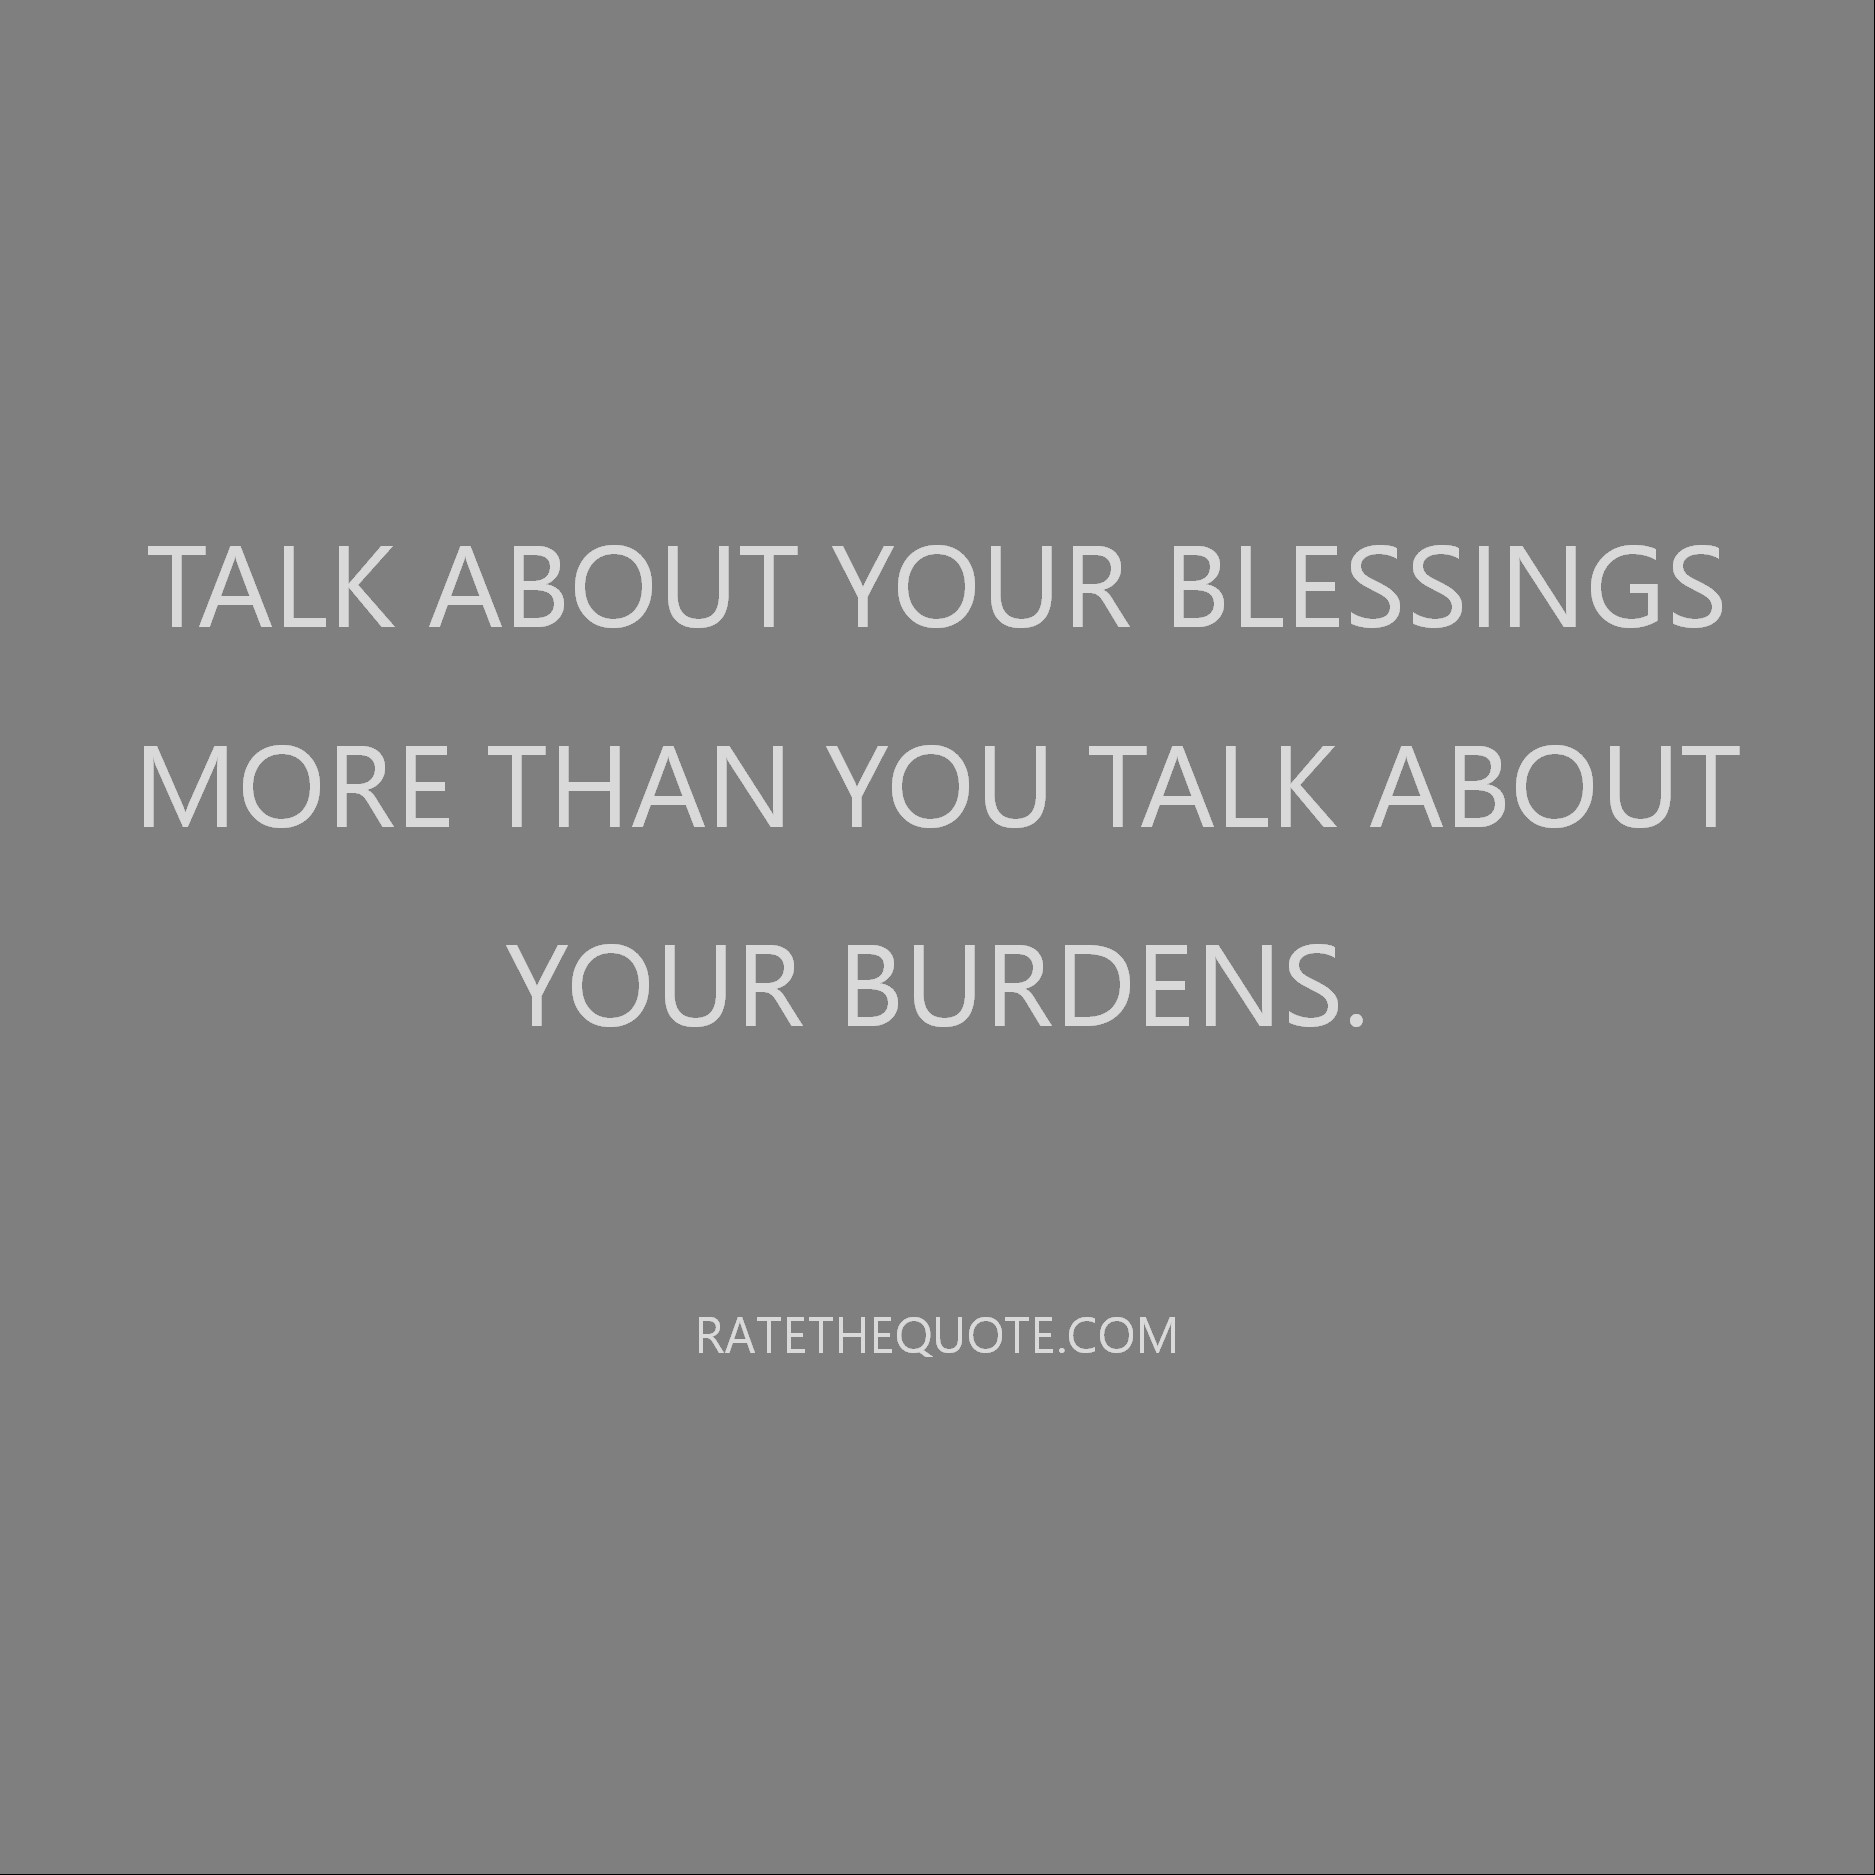 Quote Talk about your blessings more than you talk about your burdens.